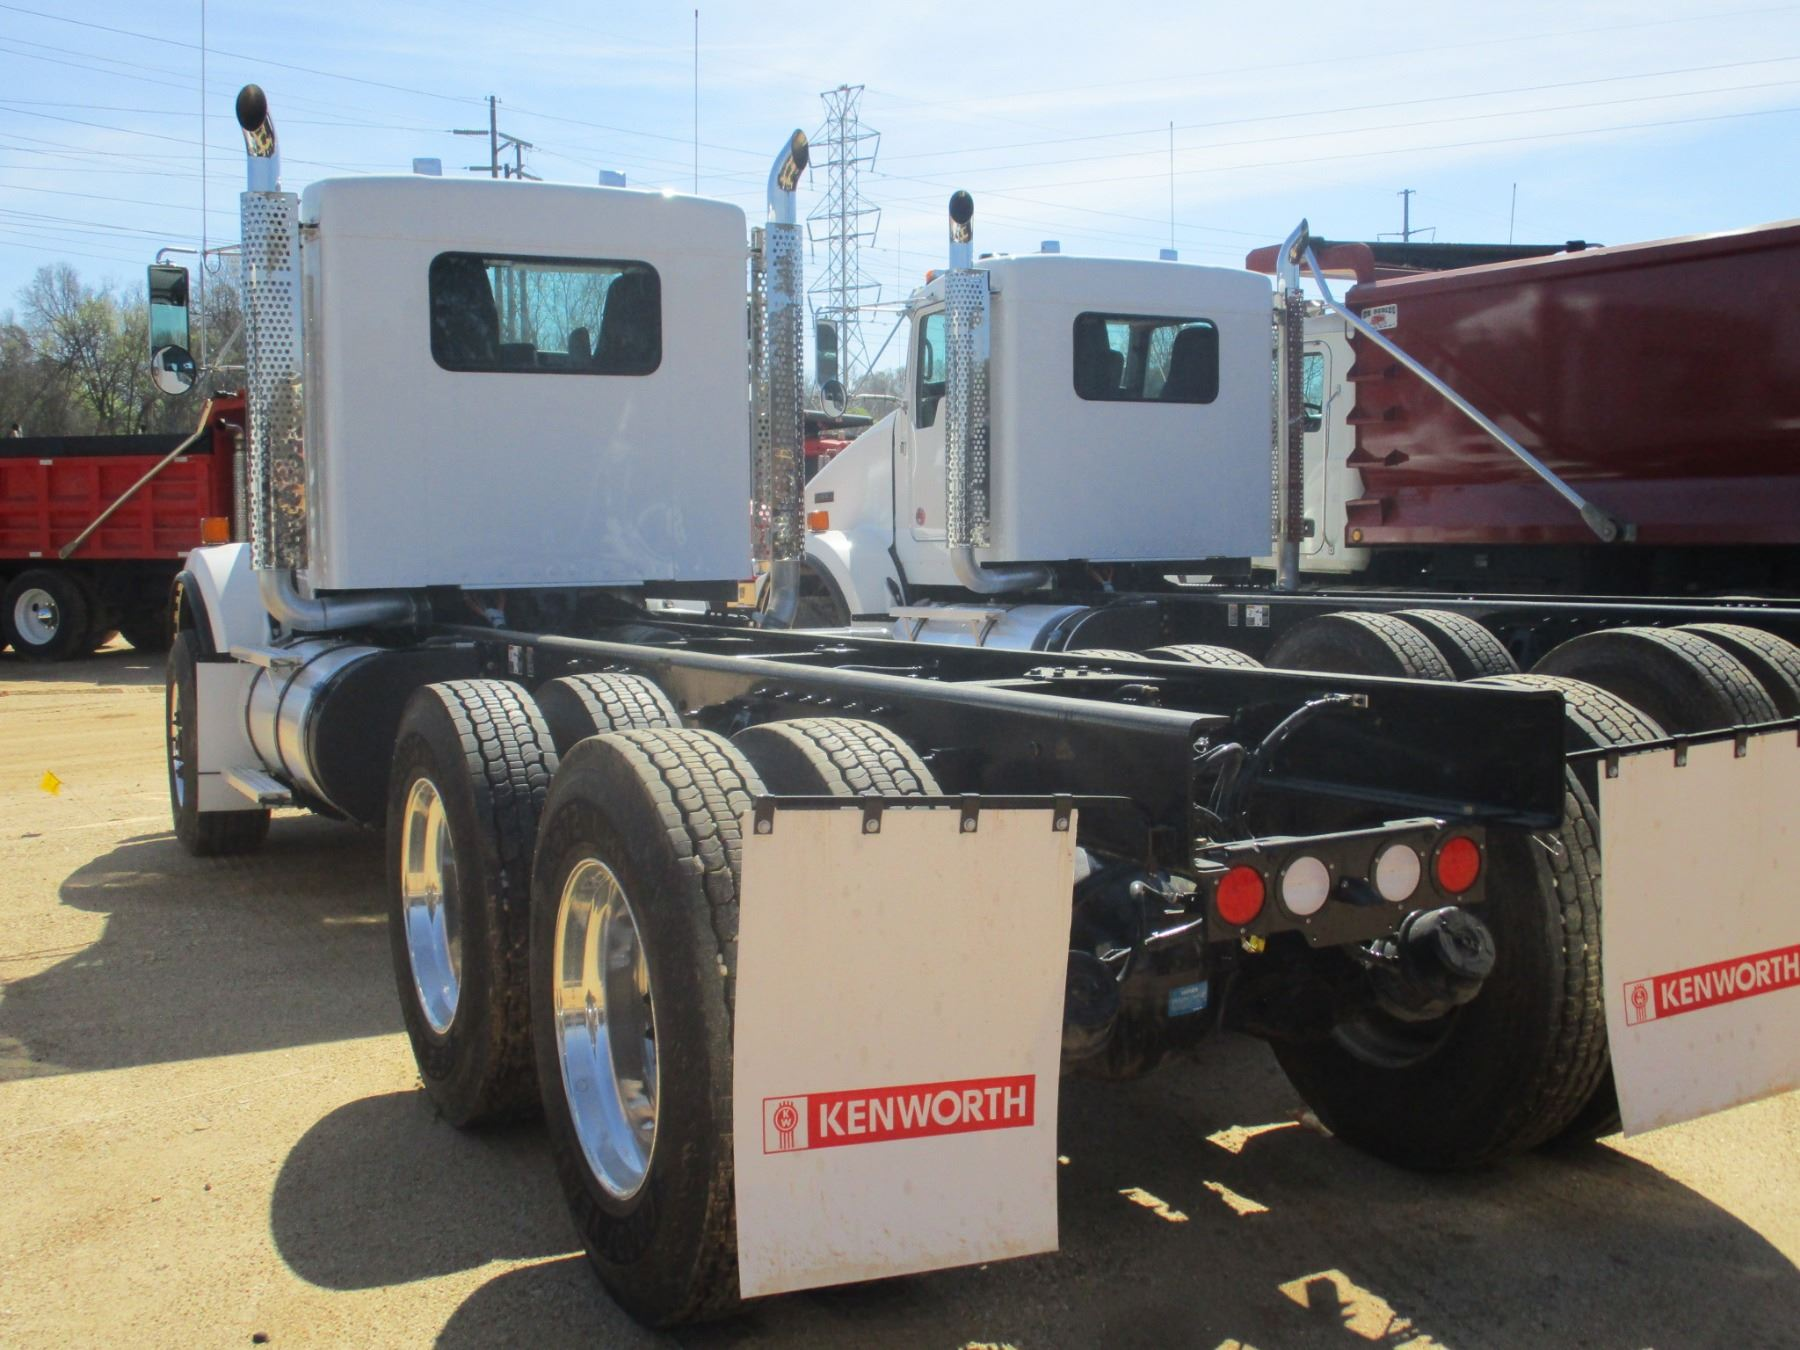 hight resolution of  image 4 2018 kenworth t800 cab chassis vin sn 1nkdl40x6jj205443